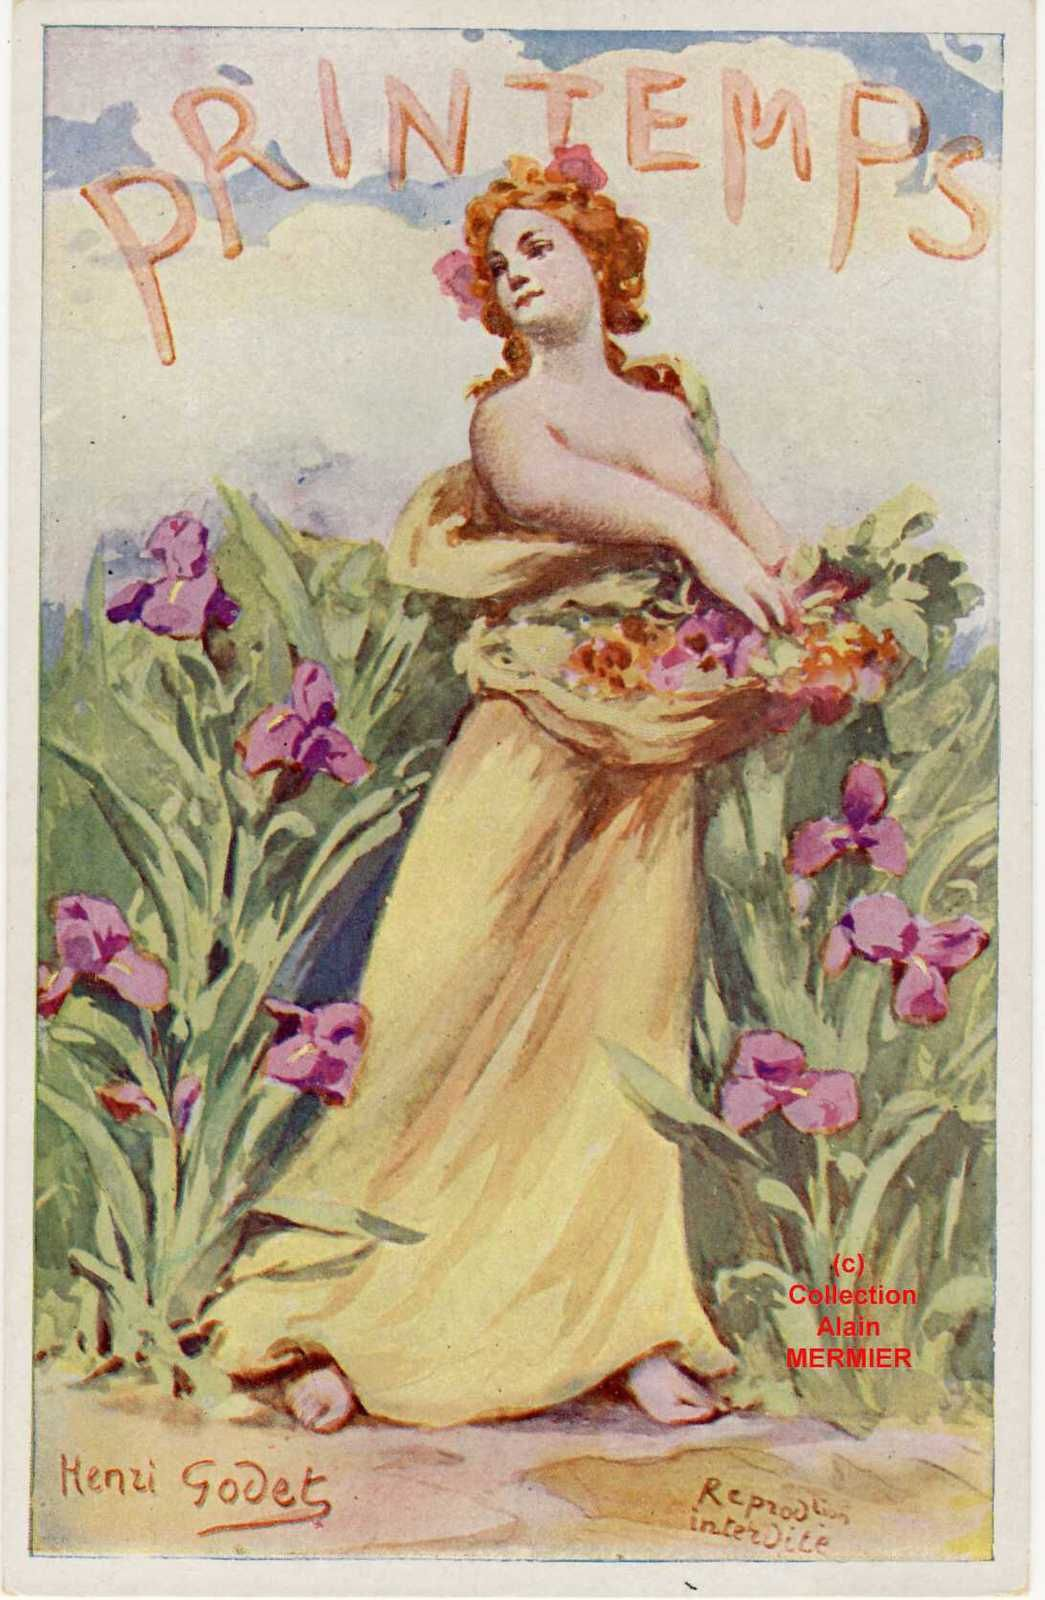 Iris - 2114- Illustrateur Henri GODET : Le printemps. France.